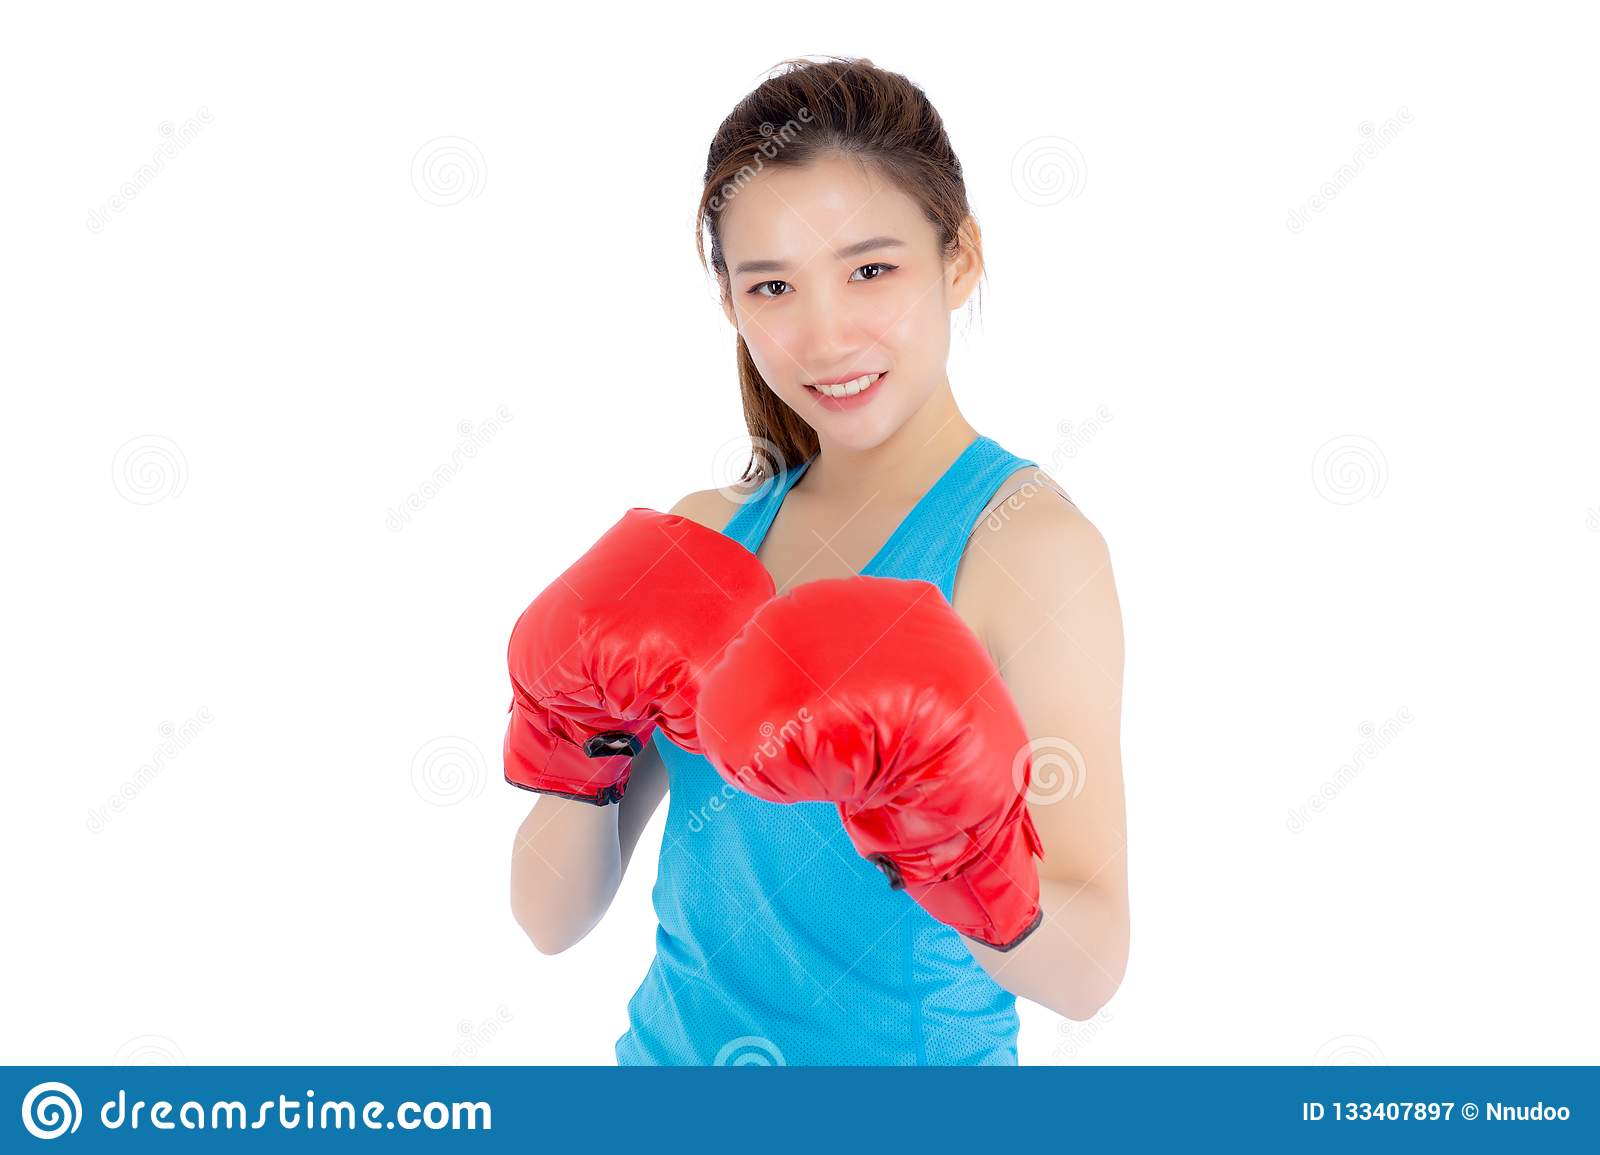 1a94c2695c5f98 Beautiful portrait young asian woman wearing red boxing gloves with  strength and strength isolated on white background, girl workout exercise  is sport ...